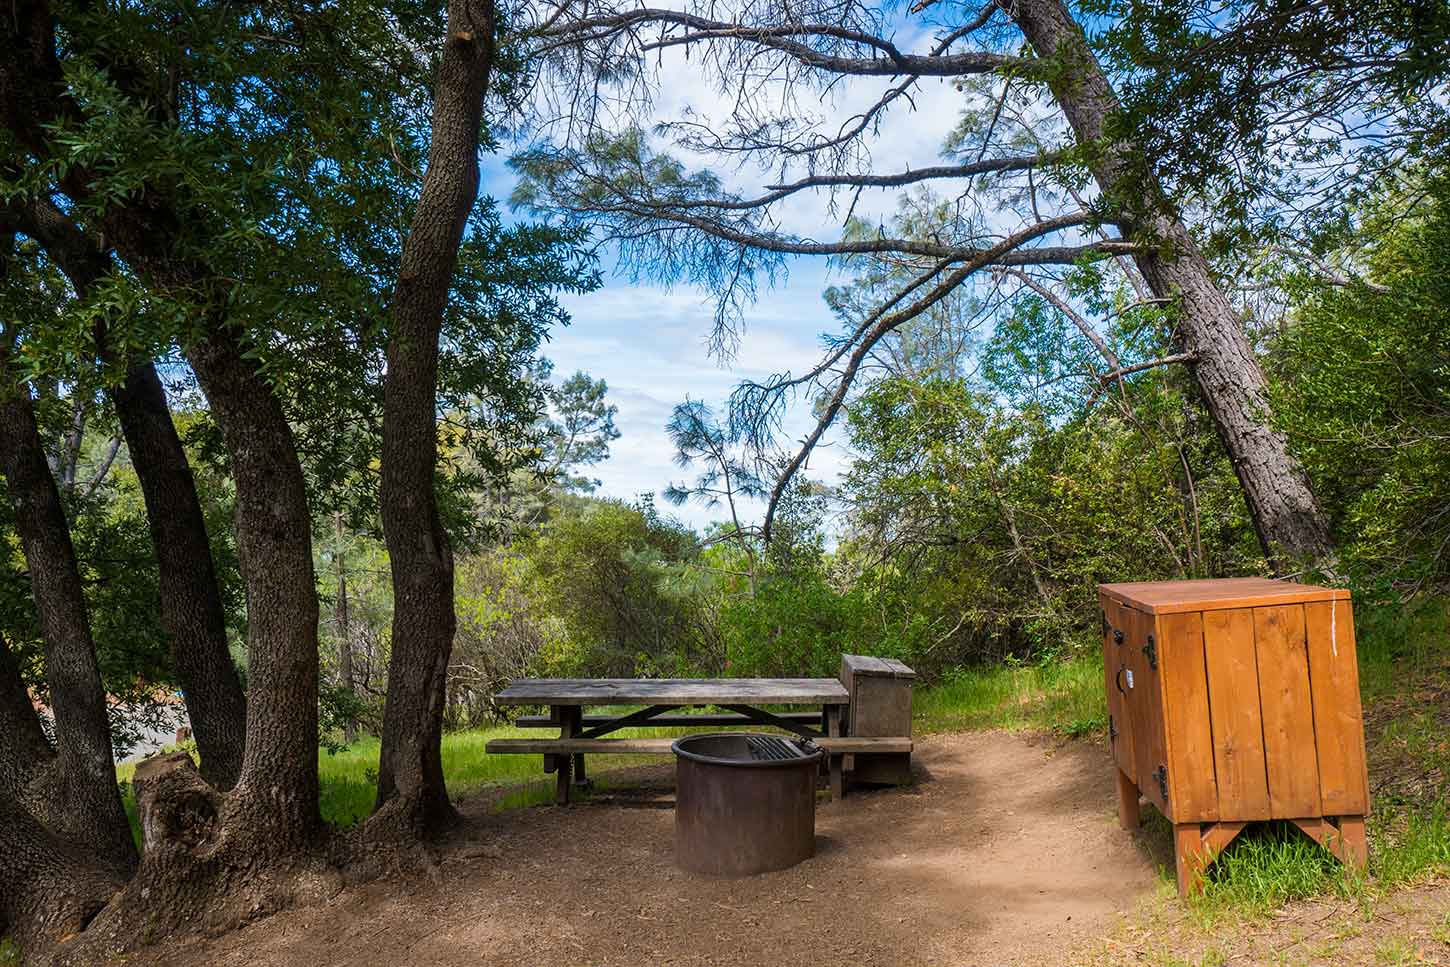 For information regarding reservations, contact this campground directly. Juniper Campground